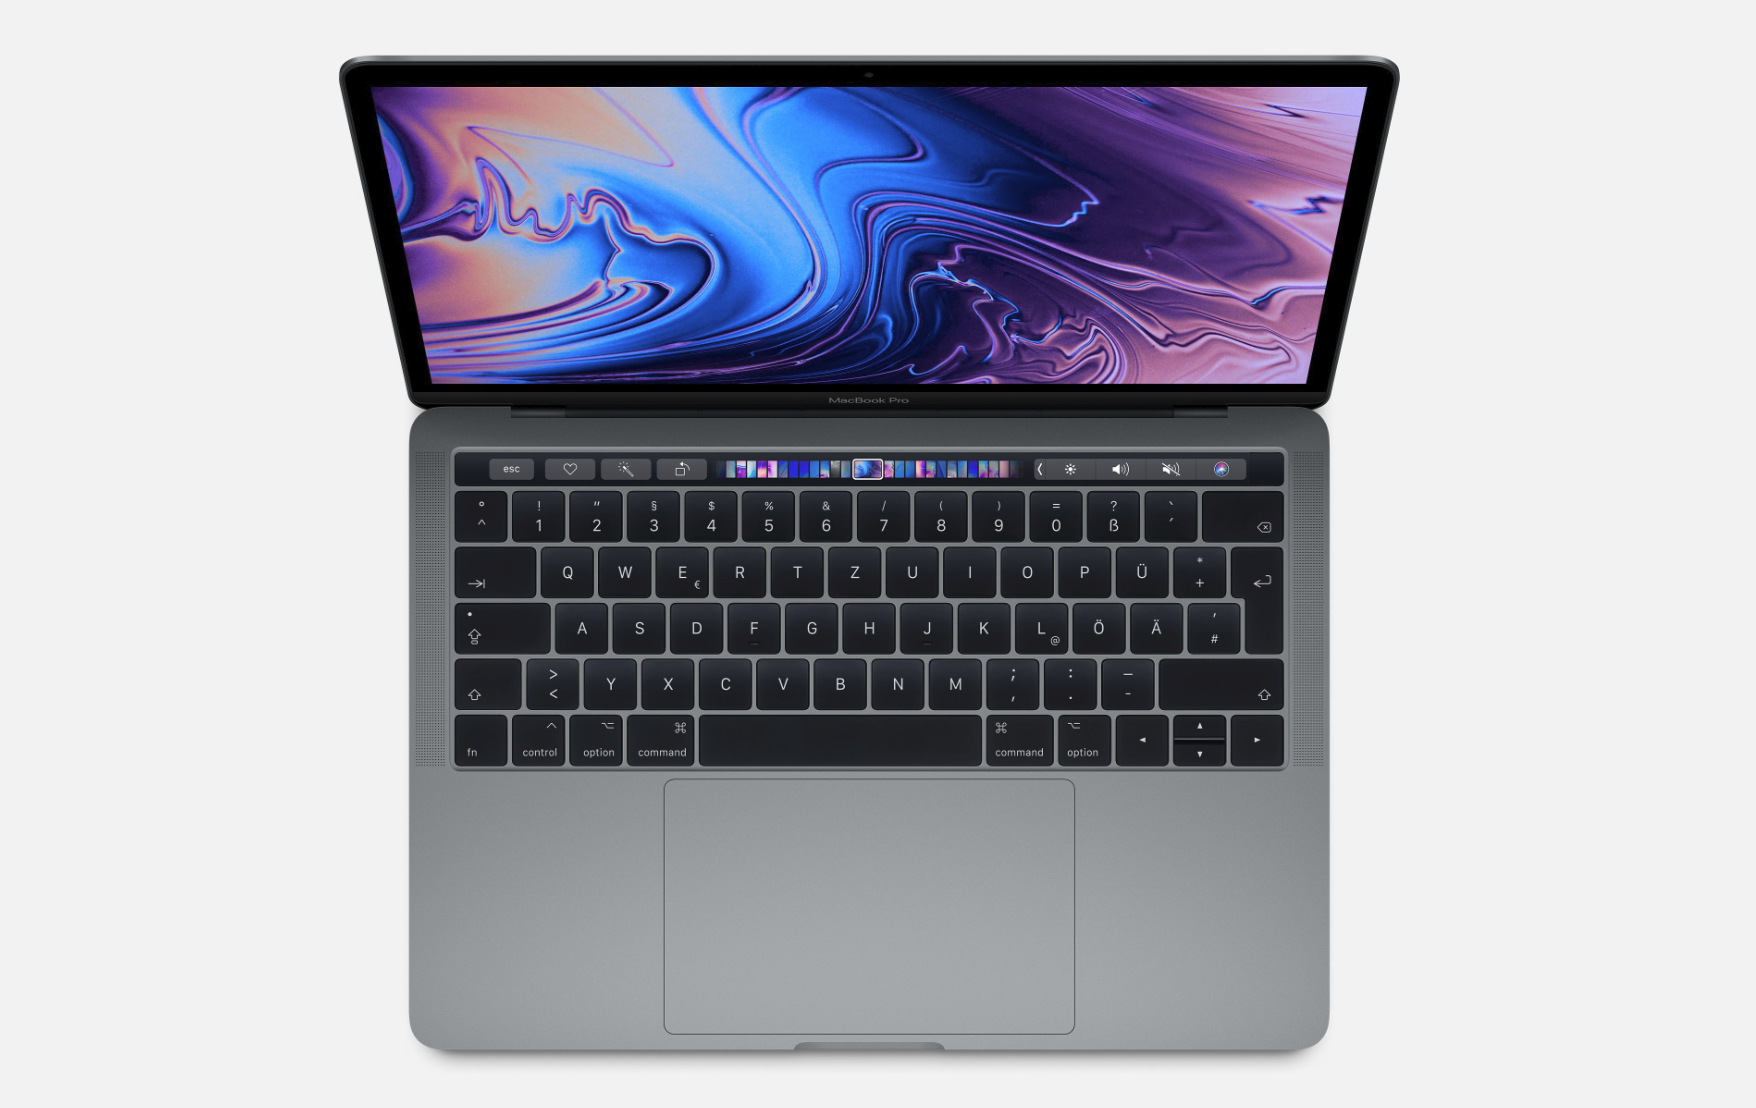 Apple Macbook Pro 13 2019 Laptop Review Good Performance But No Real Innovation Notebookcheck Net Reviews